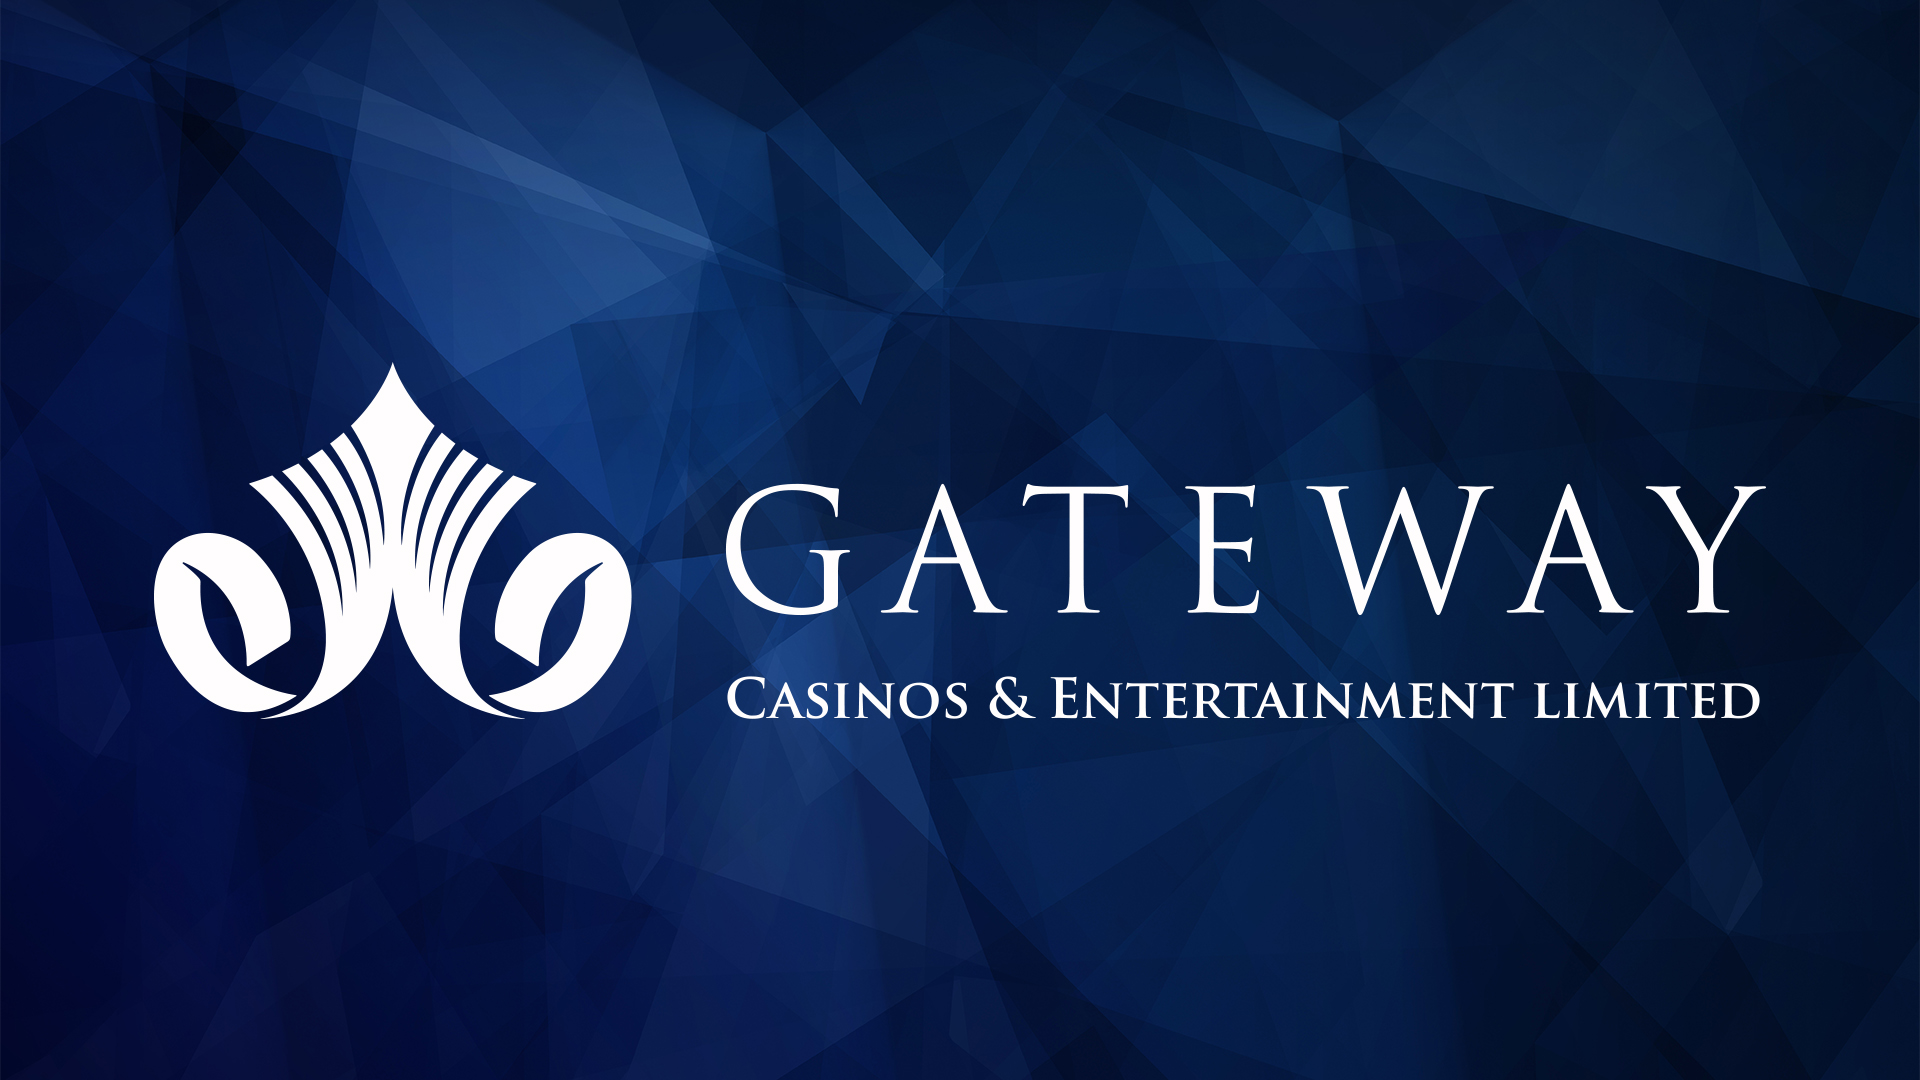 Gateway Entertainment